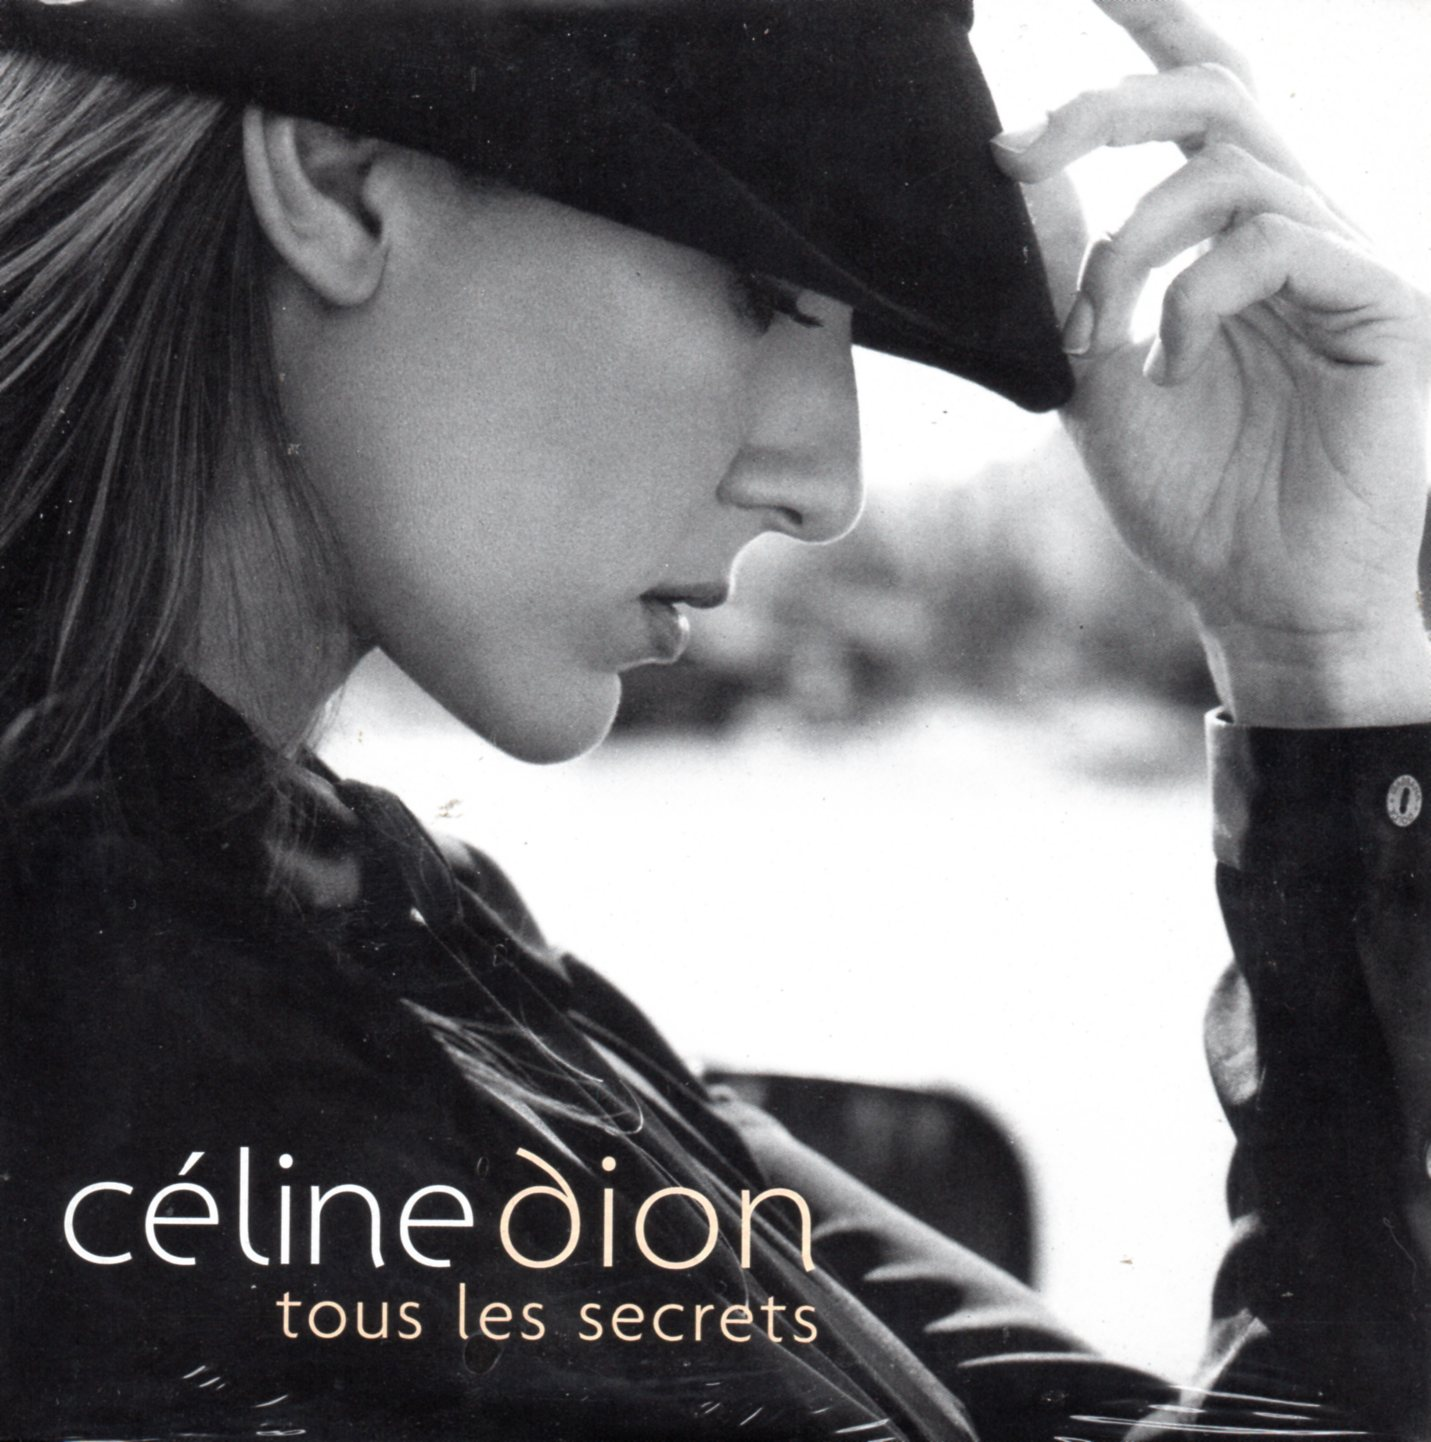 CÉLINE DION - Tous les secrets 2-Track CARD SLEEVE - CD single